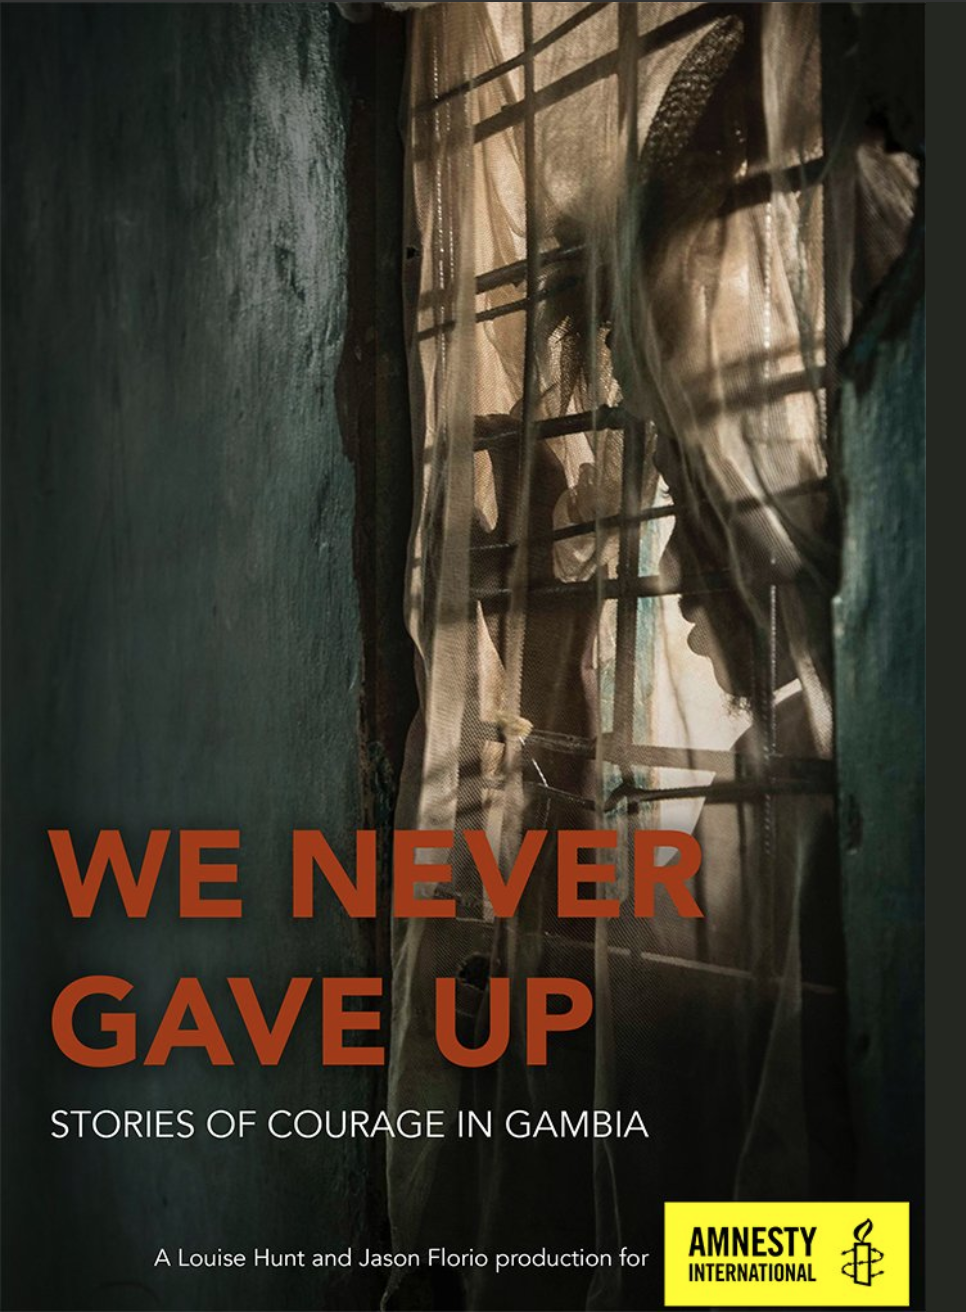 """We Never Gave Up: Stories of Courage in Gambia"" free doc screening, Aug 13th, London. Poster Image © Helen Jones-Florio (inside Mile2 prison) ""We Never Gave Up: Stories of Courage in Gambia"" free doc screening, Aug 13th, London. Image © Helen Jones-Florio (inside Mile2 prison)"